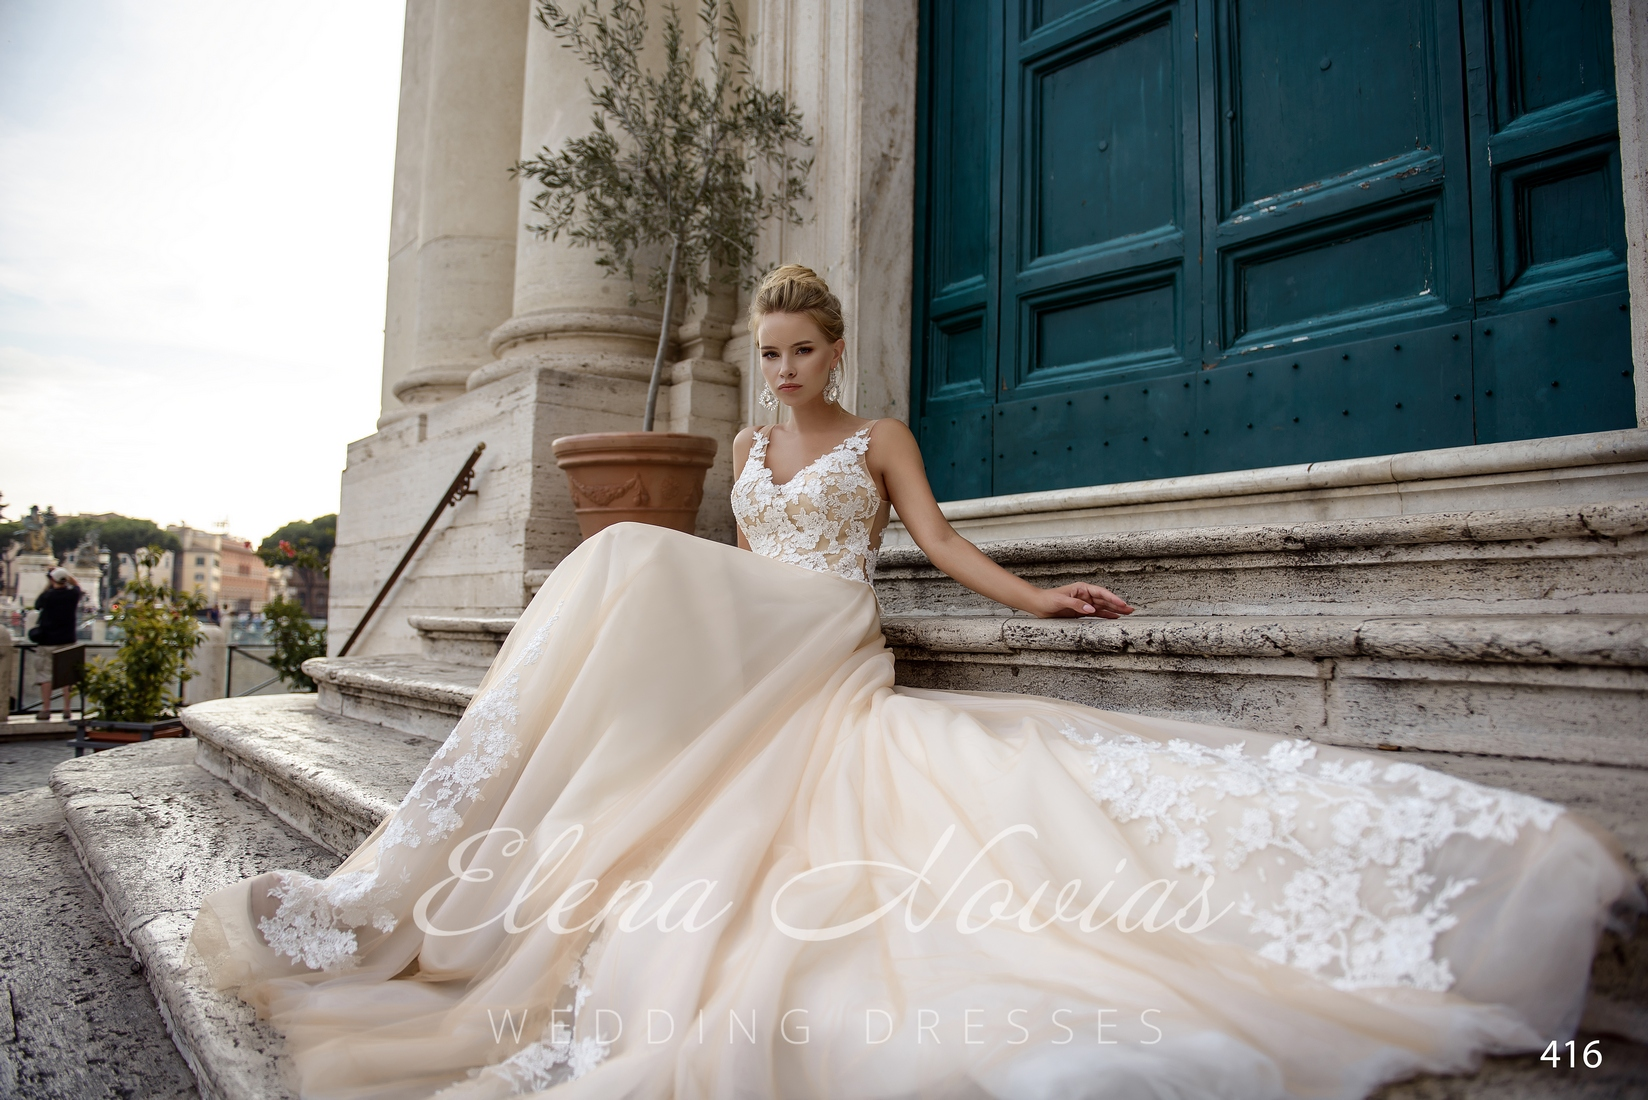 Wedding dress wholesale 416